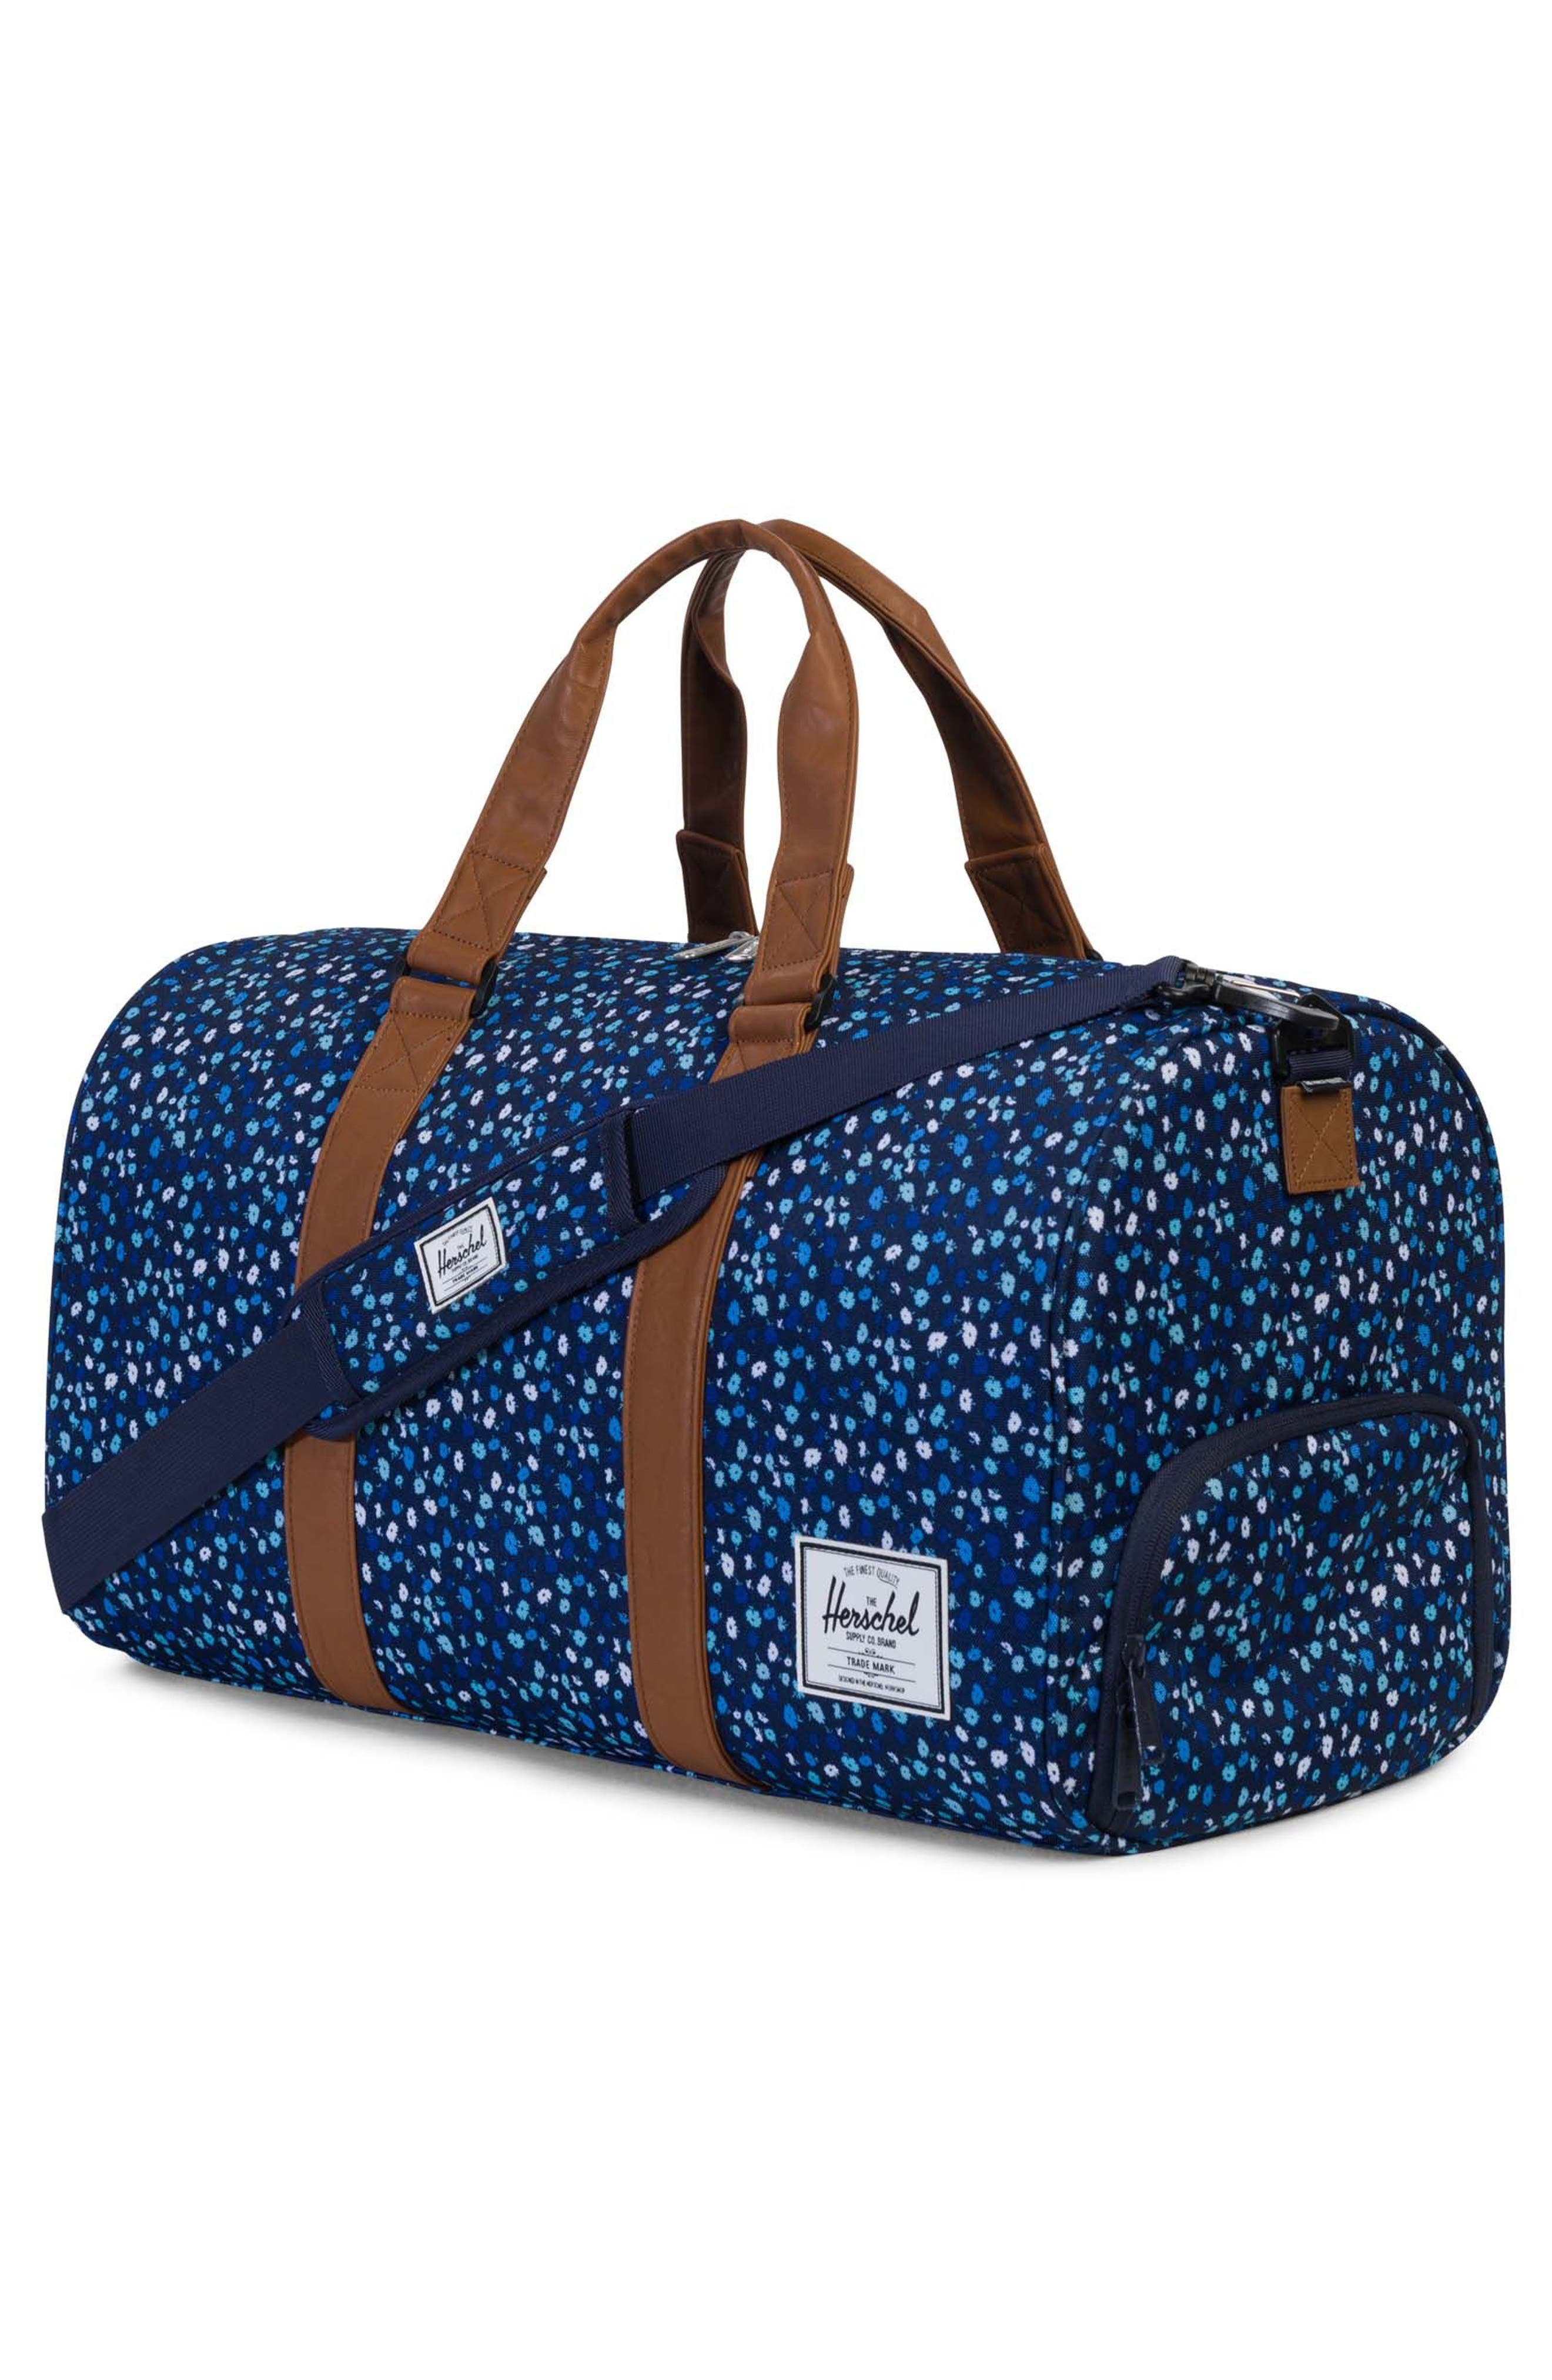 Novel Floral Pattern Duffel Bag,                             Alternate thumbnail 3, color,                             Peacoat Mini Floral